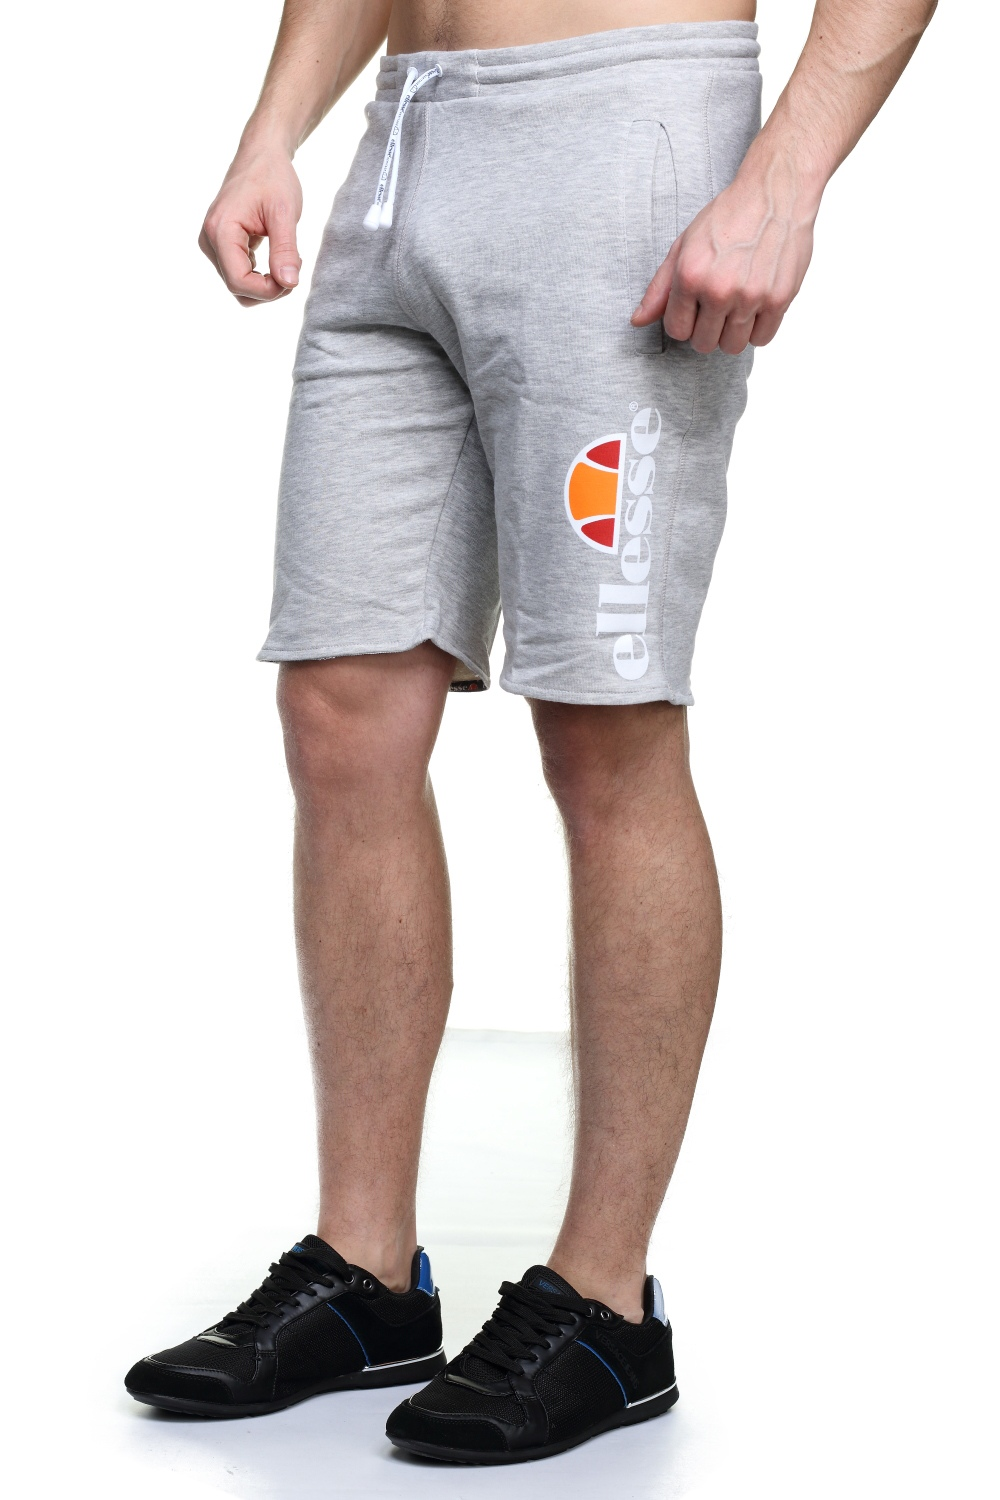 http://www.leadermode.com/139843/ellesse-eh-h-short-long-molleton-gris-chine.jpg